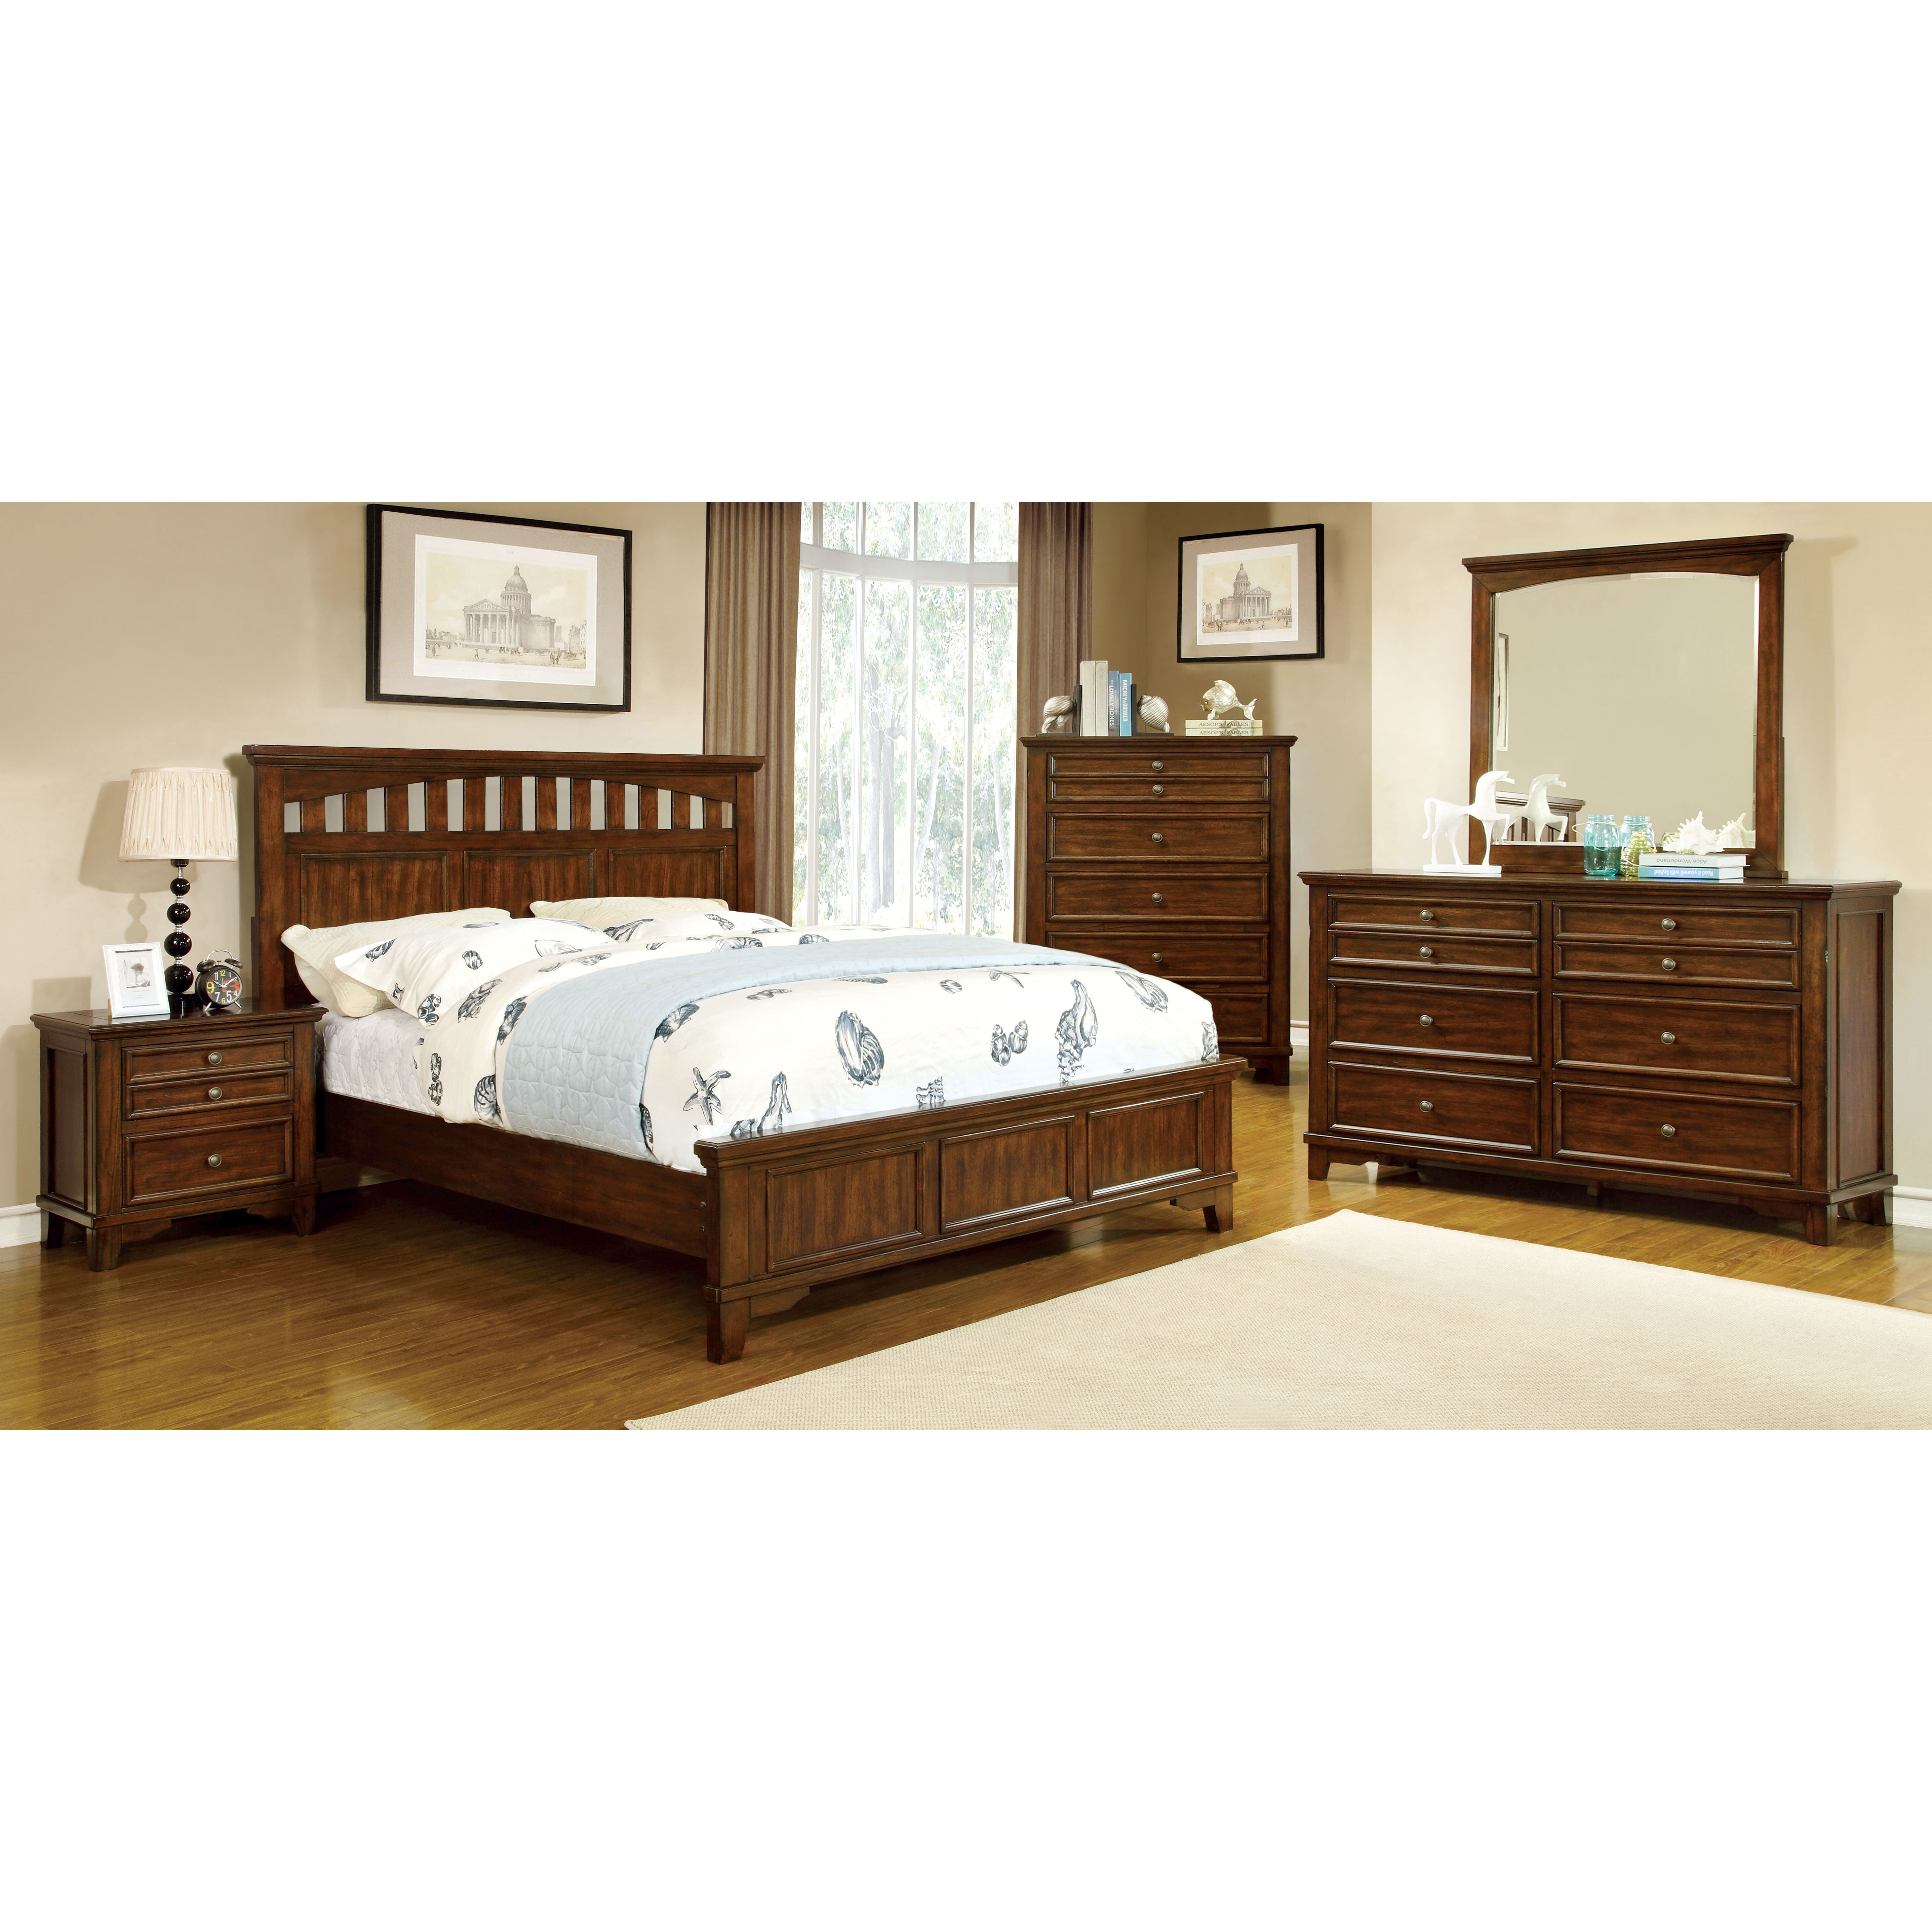 Hokku Designs Branden Panel Customizable Bedroom Set